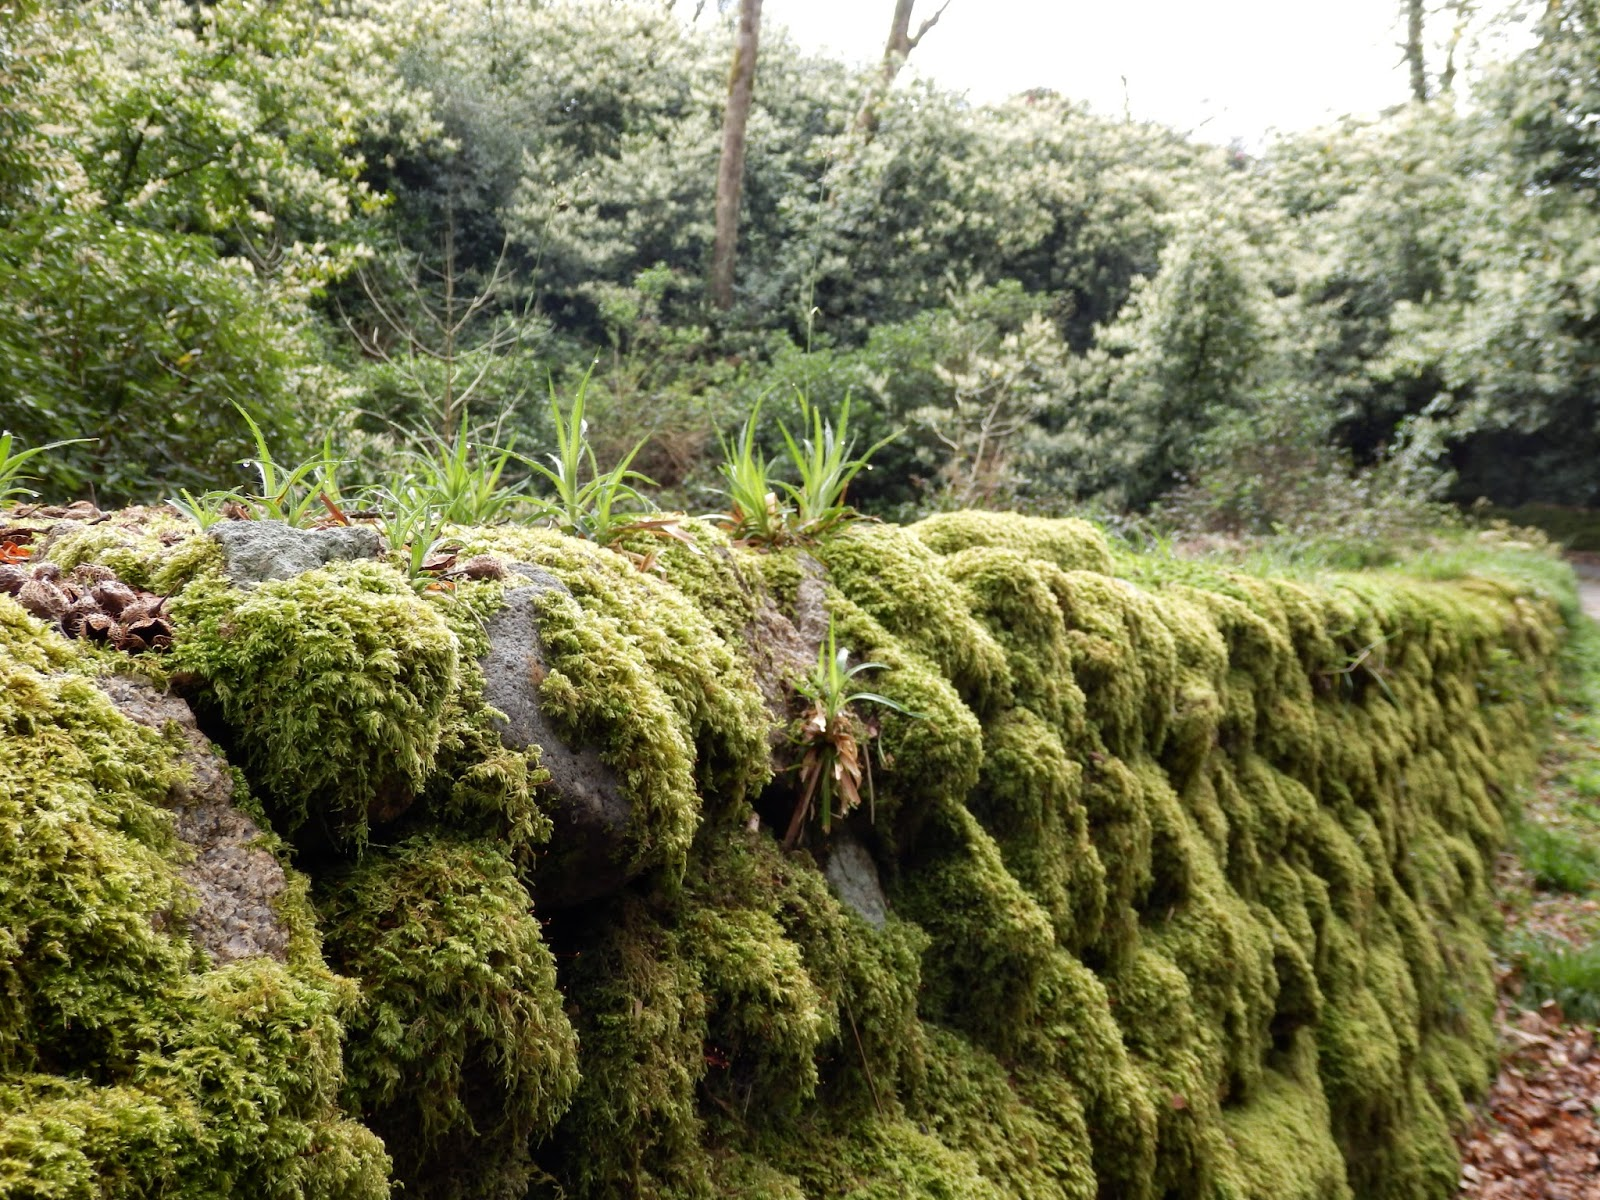 Cornish stone walls covered with moss